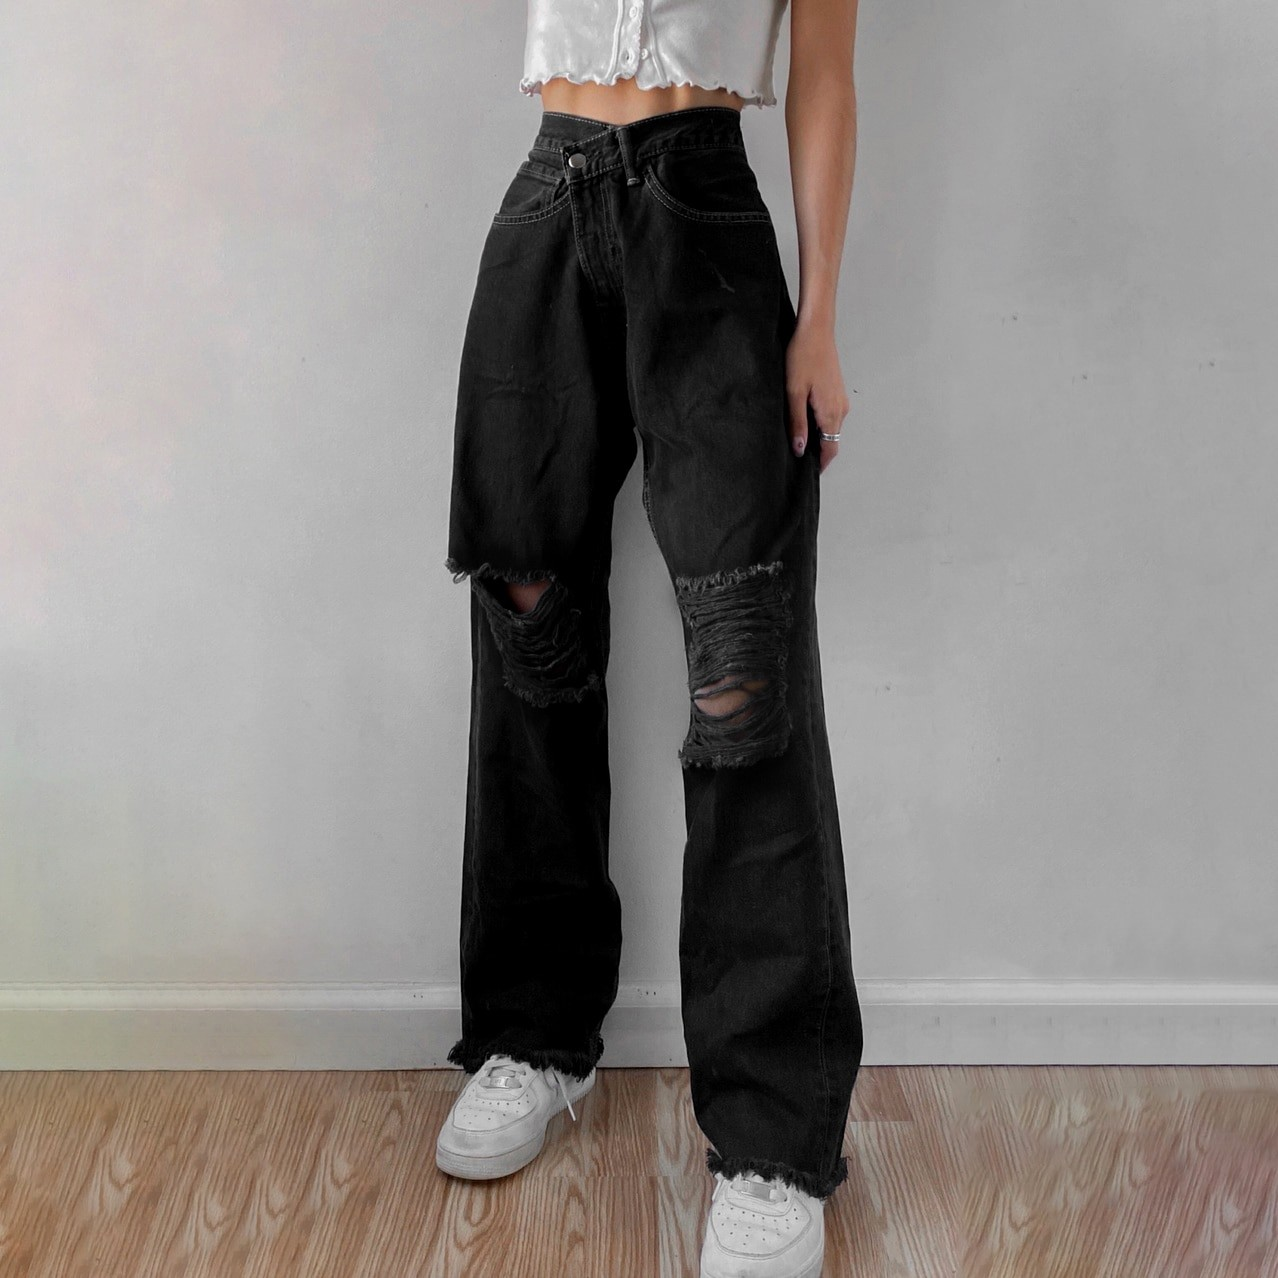 E-girl Punk Grunge Y2K High Waist Jeans with Holes 56